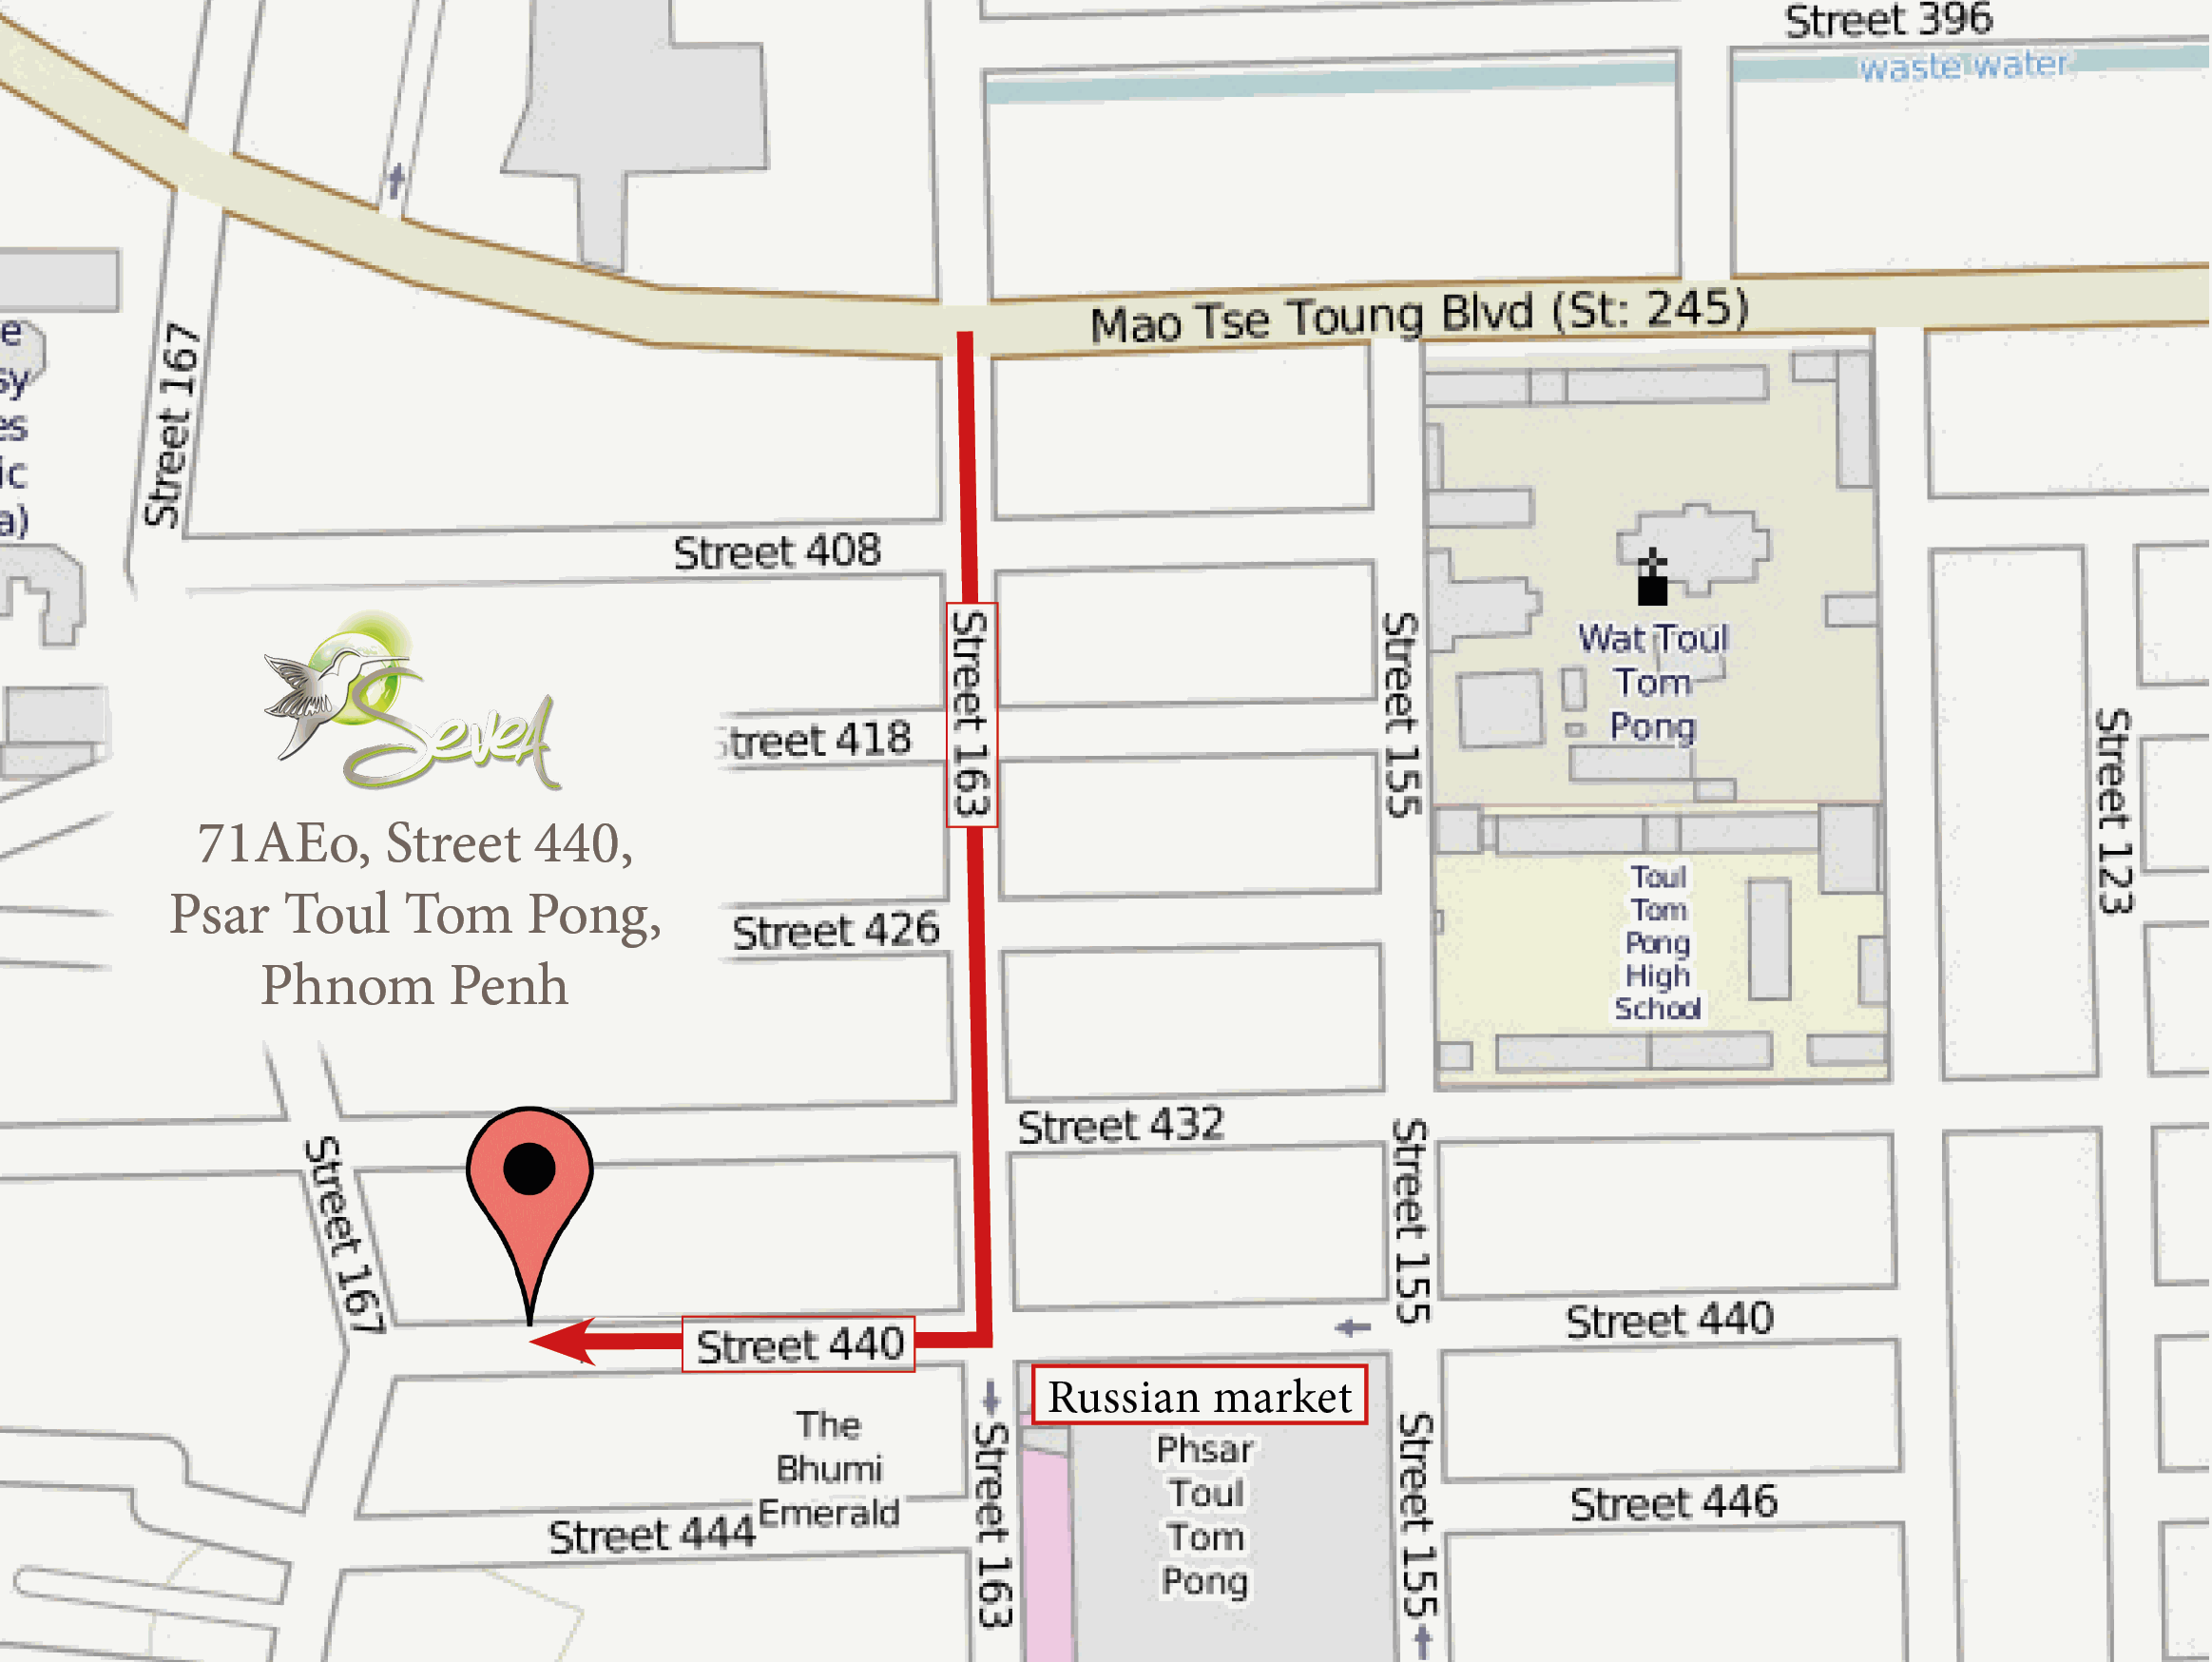 Map to localize Sevea office in Phnom Penh